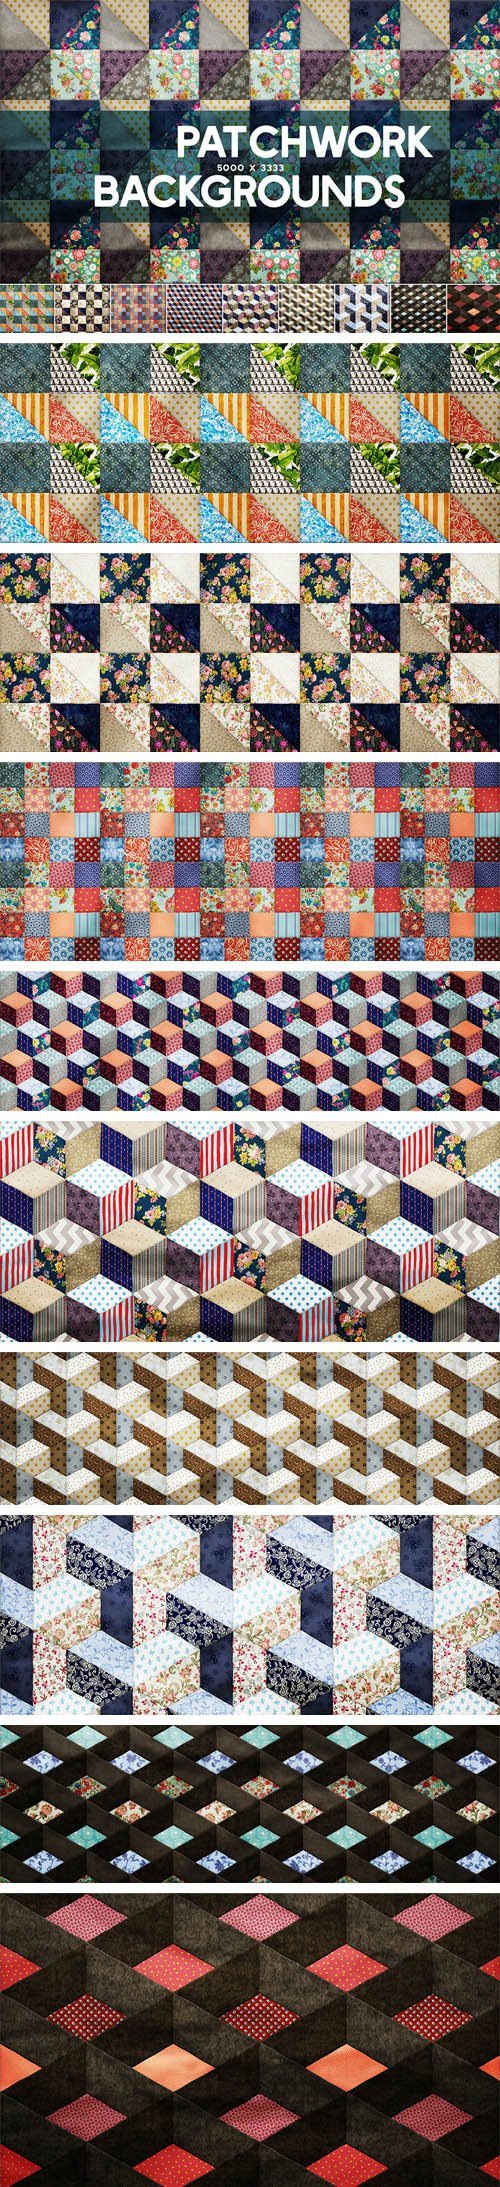 10 Patchwork Backgrounds